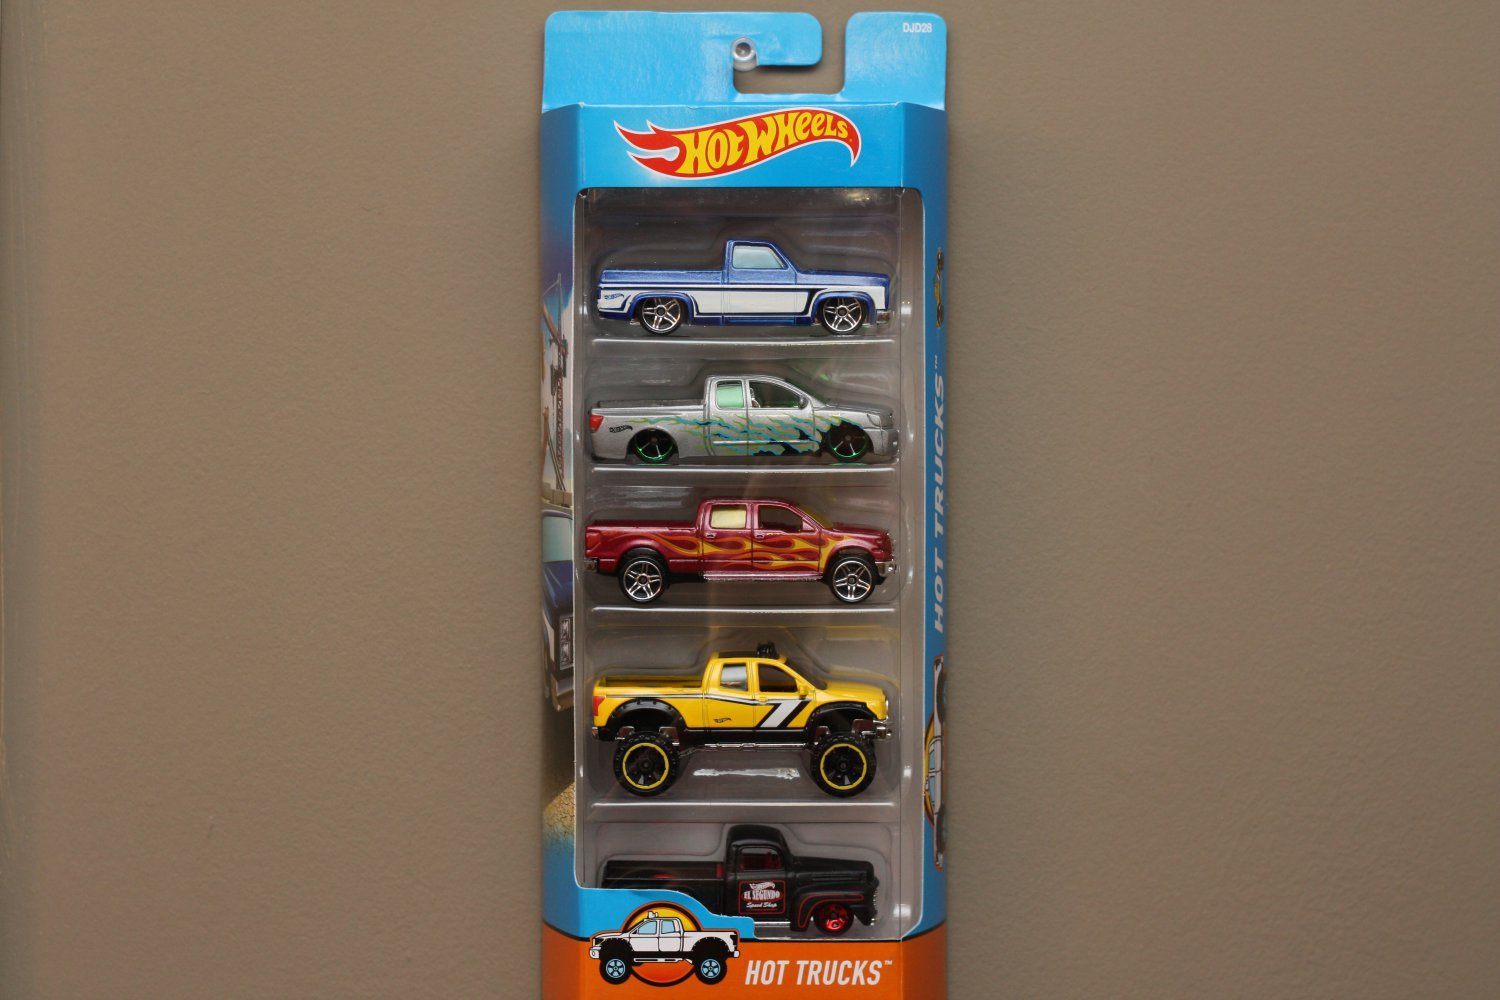 Hot Wheels 2017 5-Packs Hot Trucks (Chevy, Nissan, Ford, Toyota)